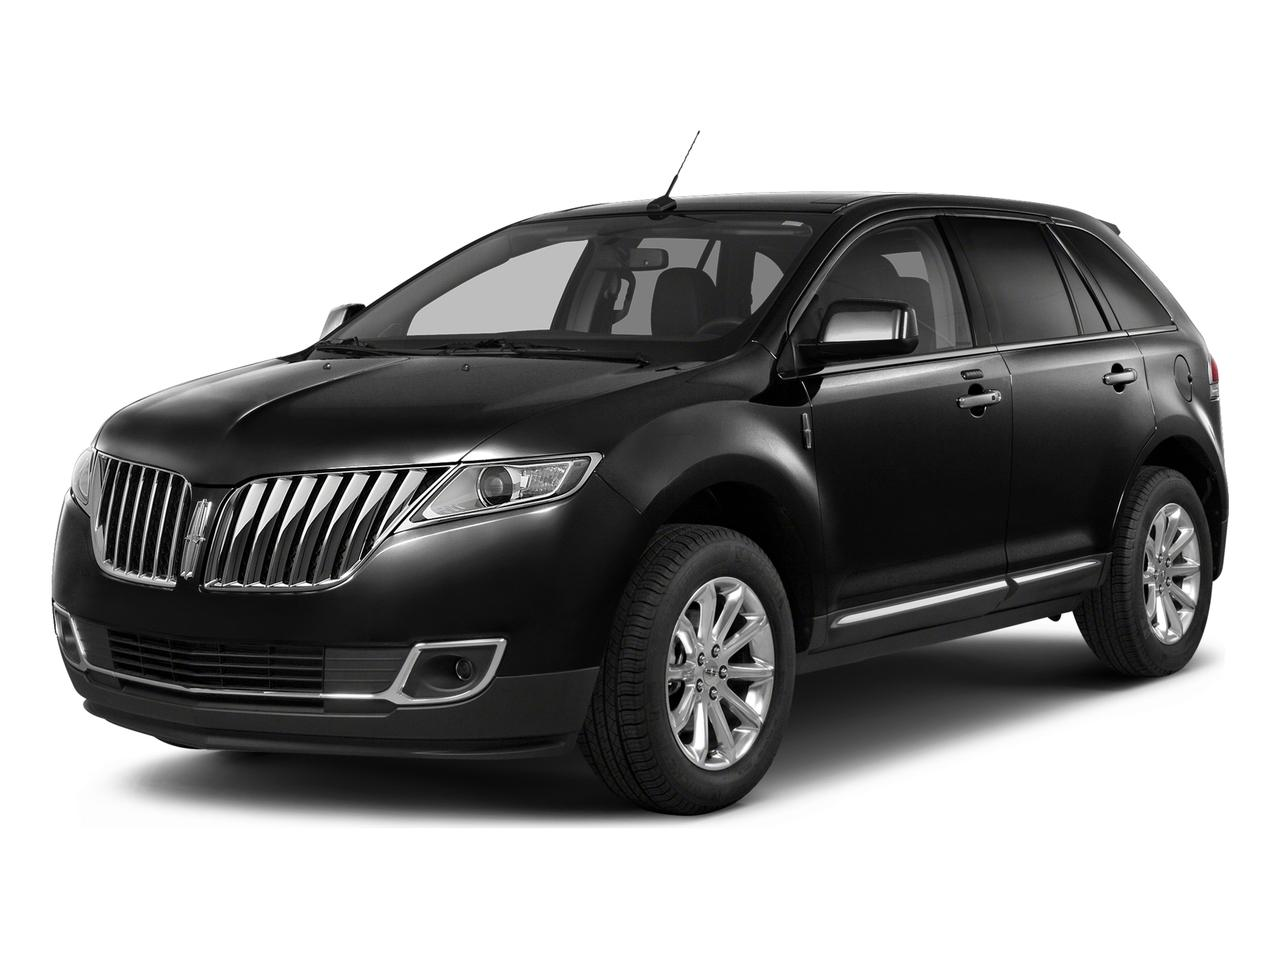 2015 LINCOLN MKX Vehicle Photo in San Antonio, TX 78257